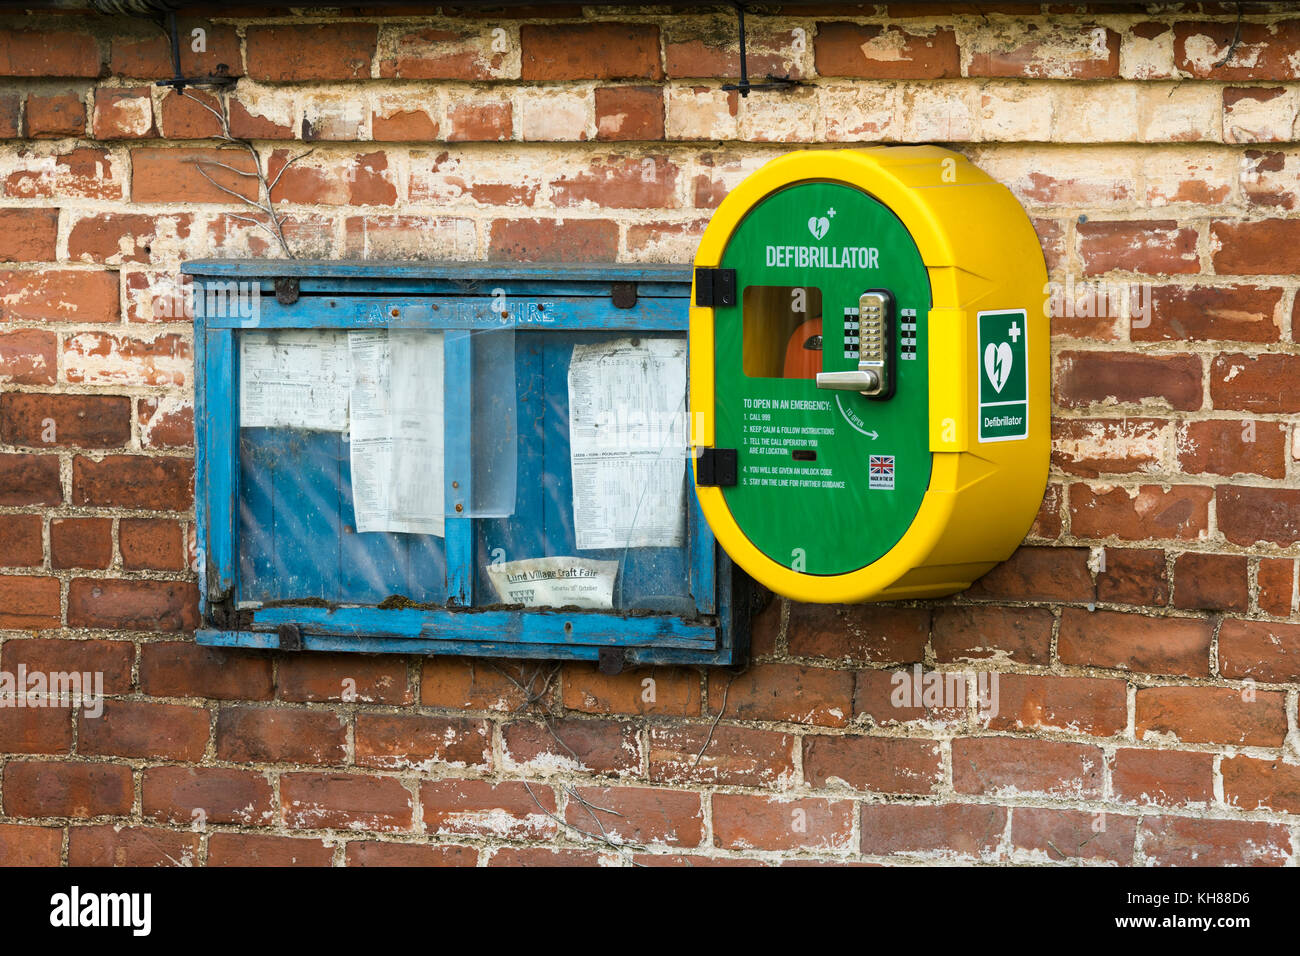 Emergency life saving defibrillator & old village notice board side by side, mounted on external brick wall - Stock Image